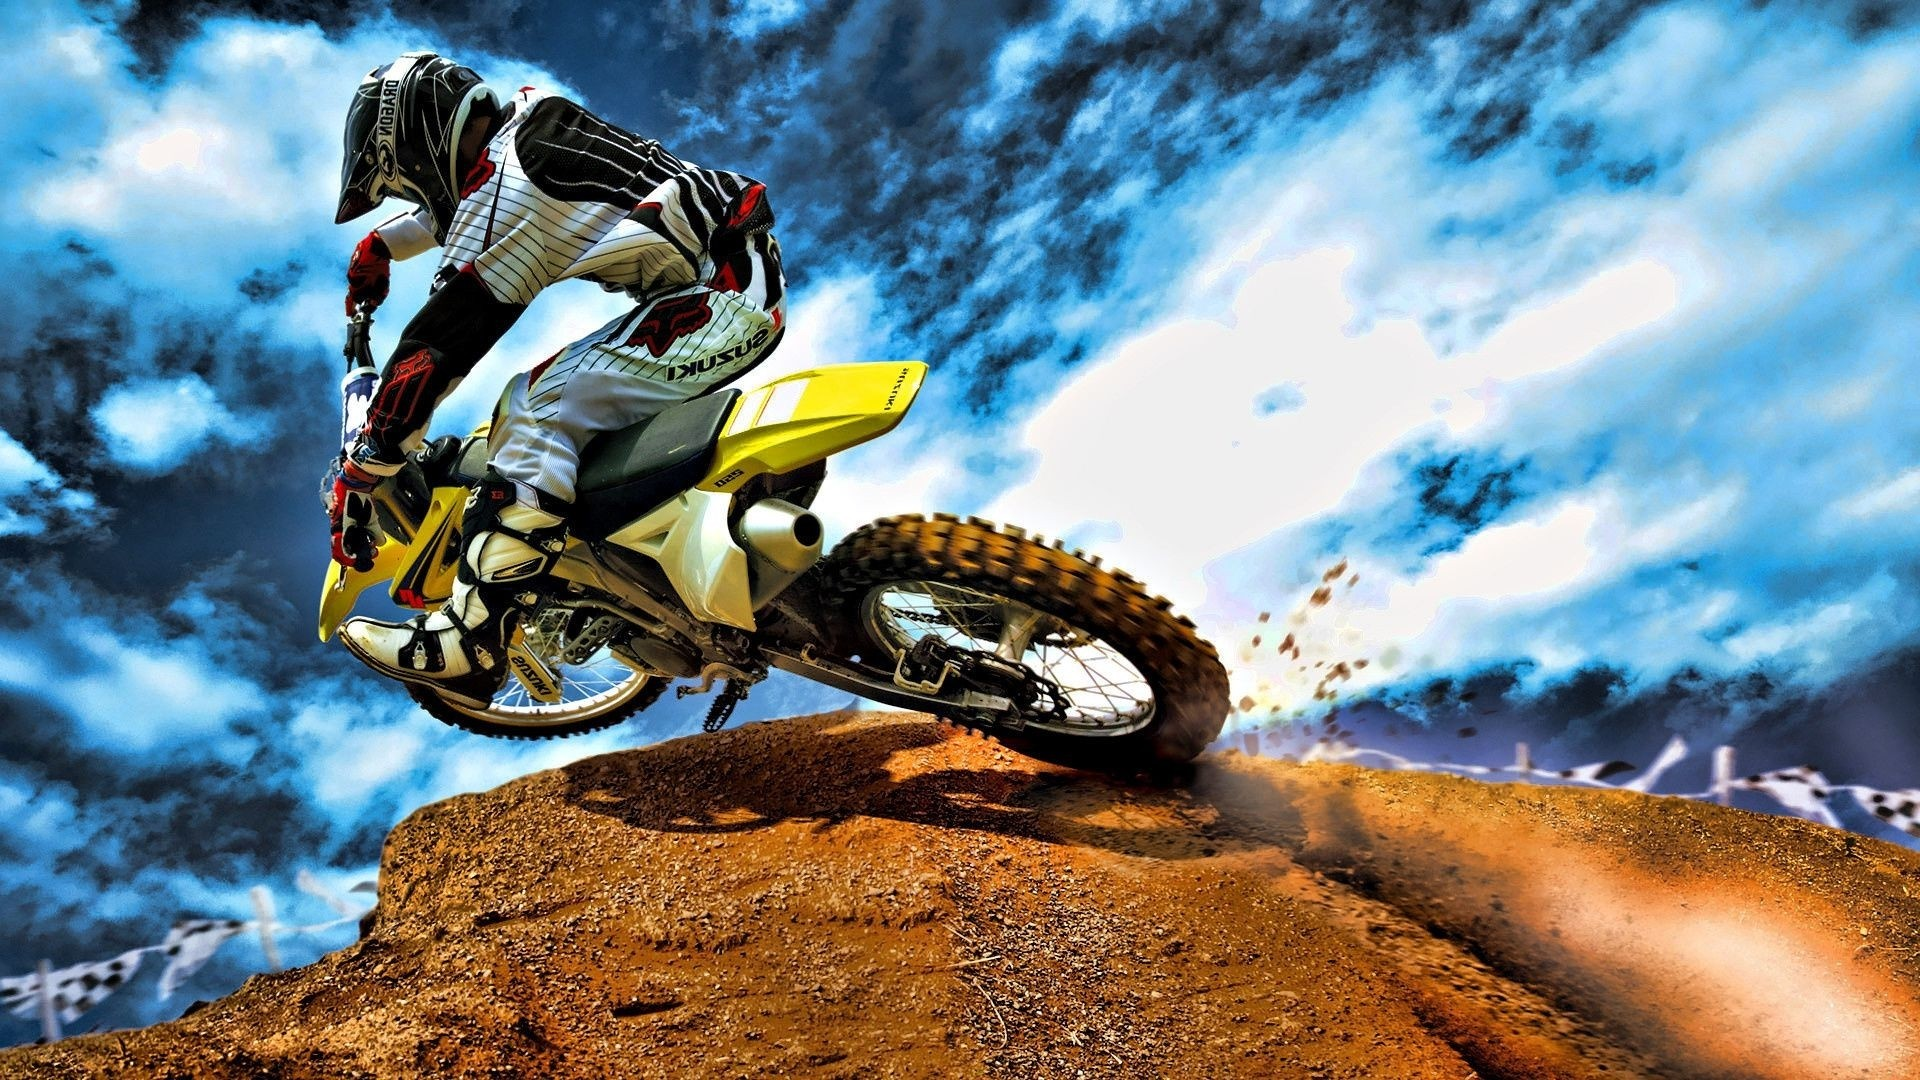 Dirt Bike Full HD Wallpaper